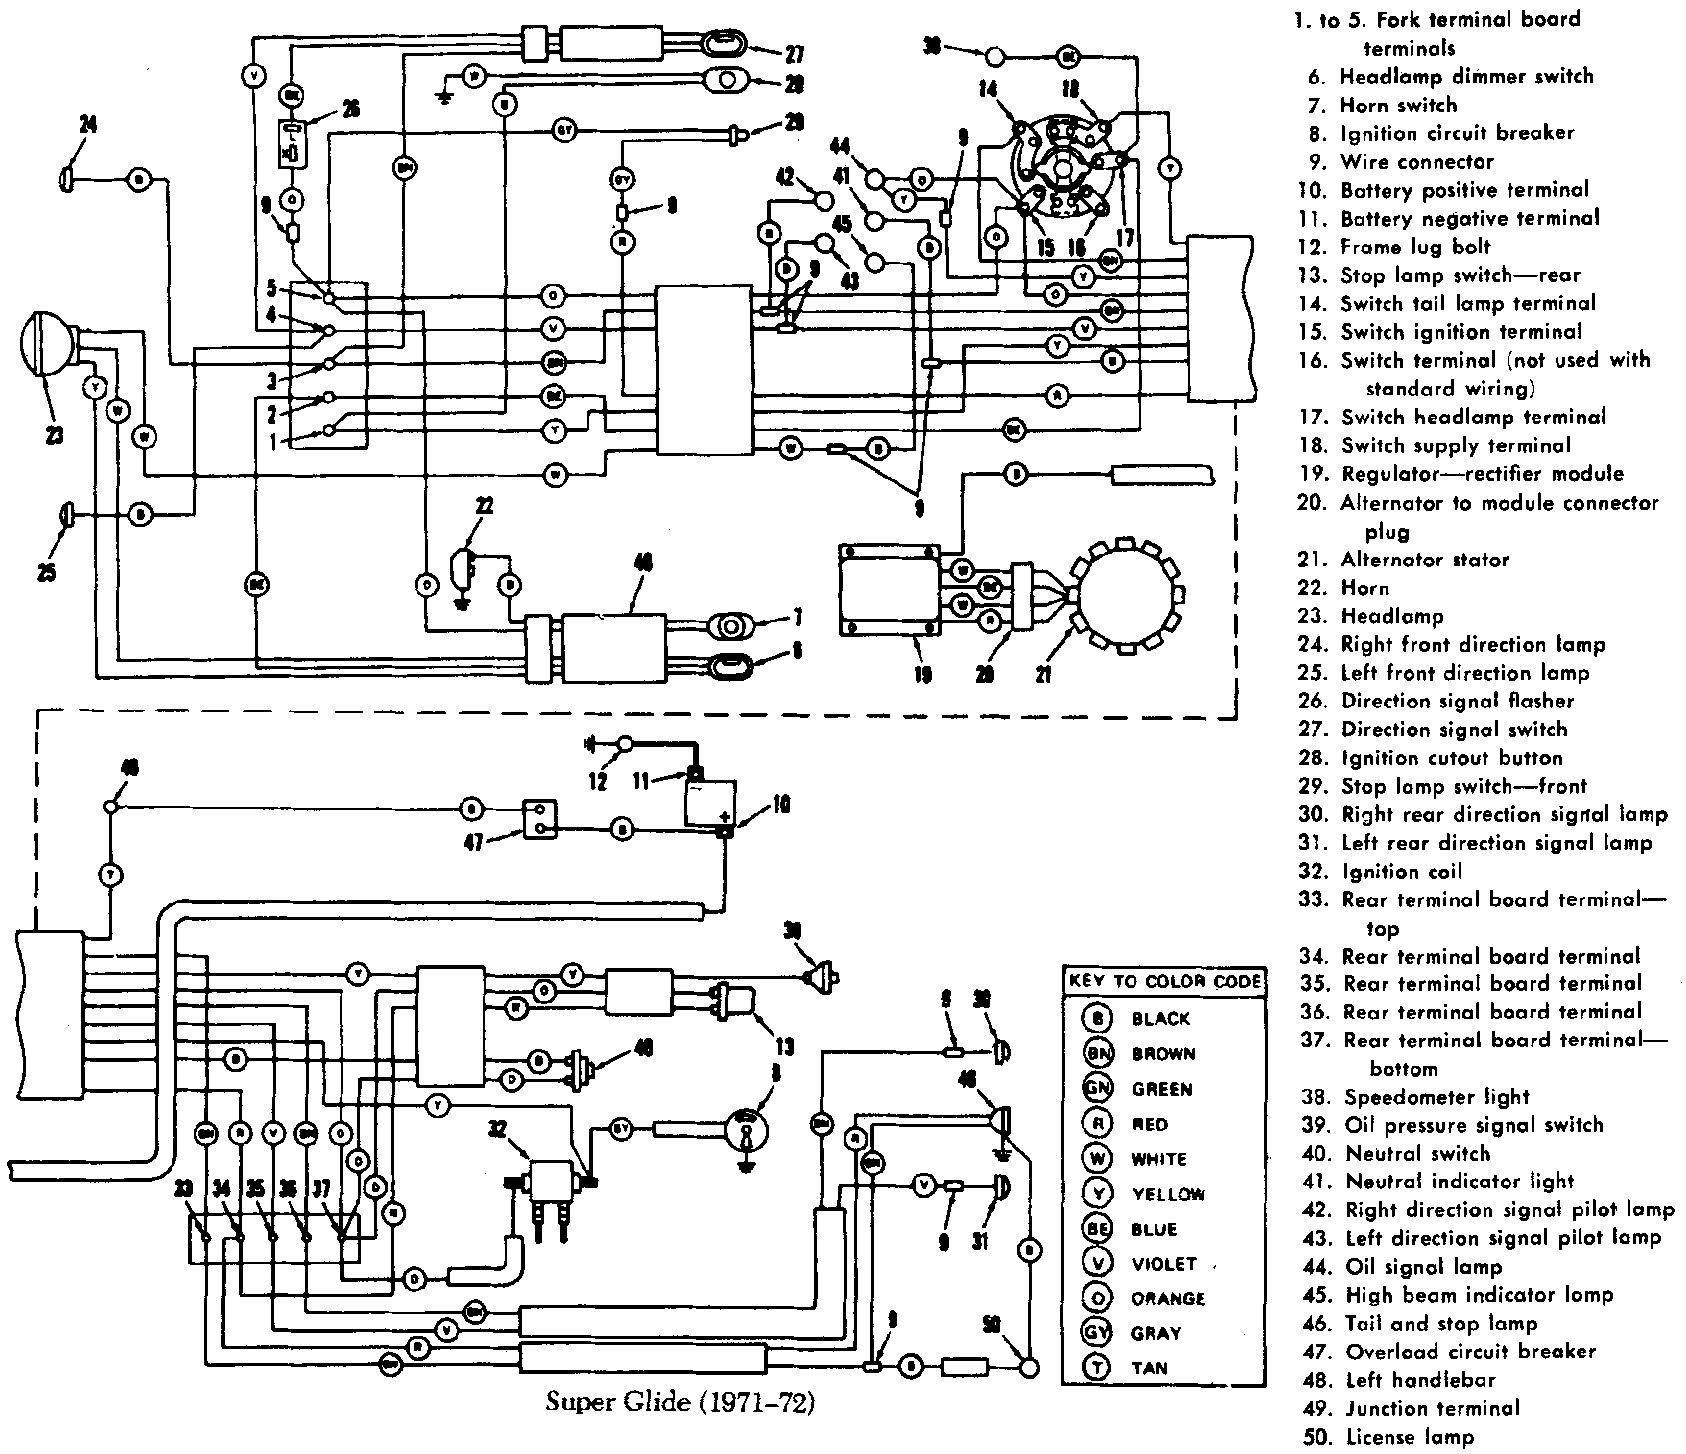 hight resolution of 2000 harley davidson dyna wiring diagrams simple wiring schema rh 34 aspire atlantis de 1998 2001